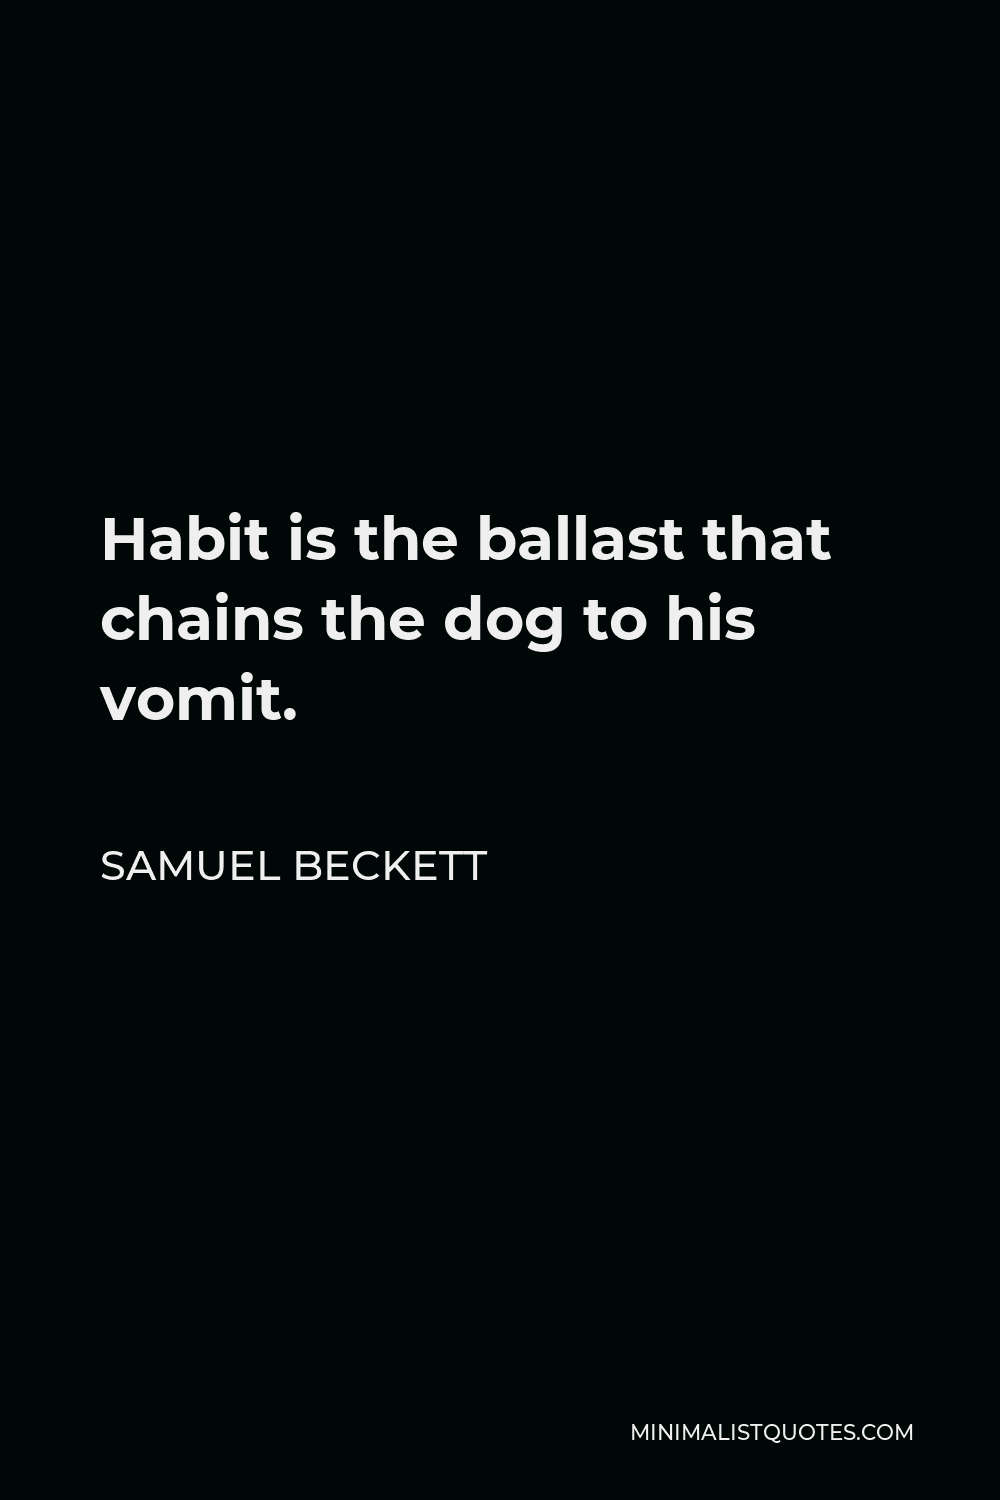 Samuel Beckett Quote - Habit is the ballast that chains the dog to his vomit.